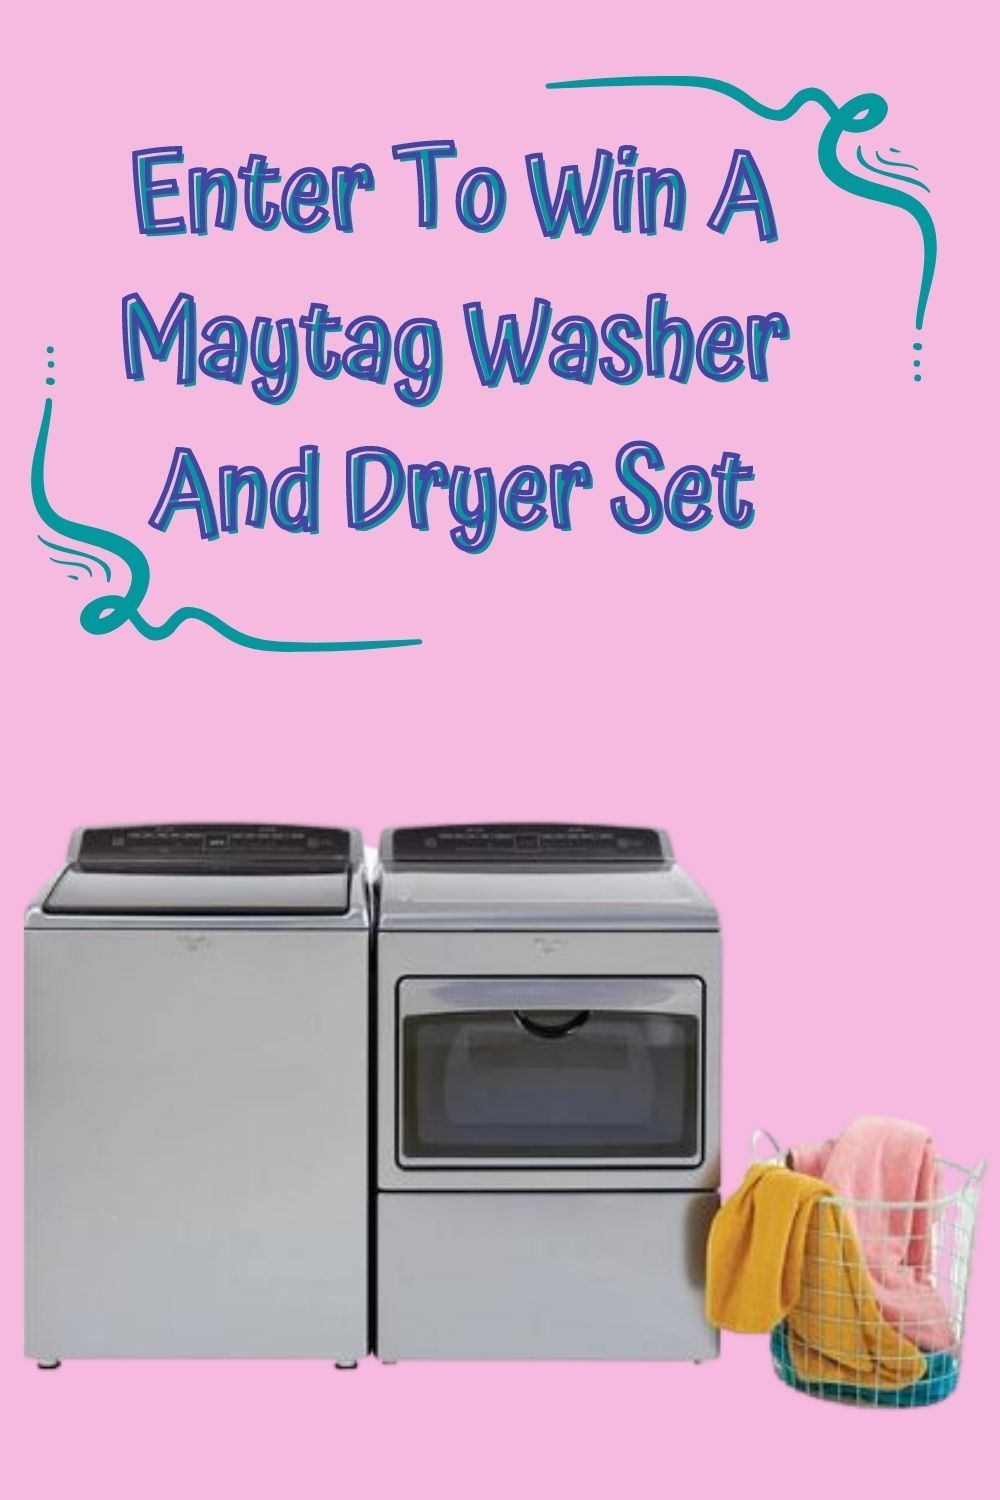 Win A Maytag Washer And Dryer In 2020 Maytag Washer And Dryer Washer And Dryer Maytag Washers